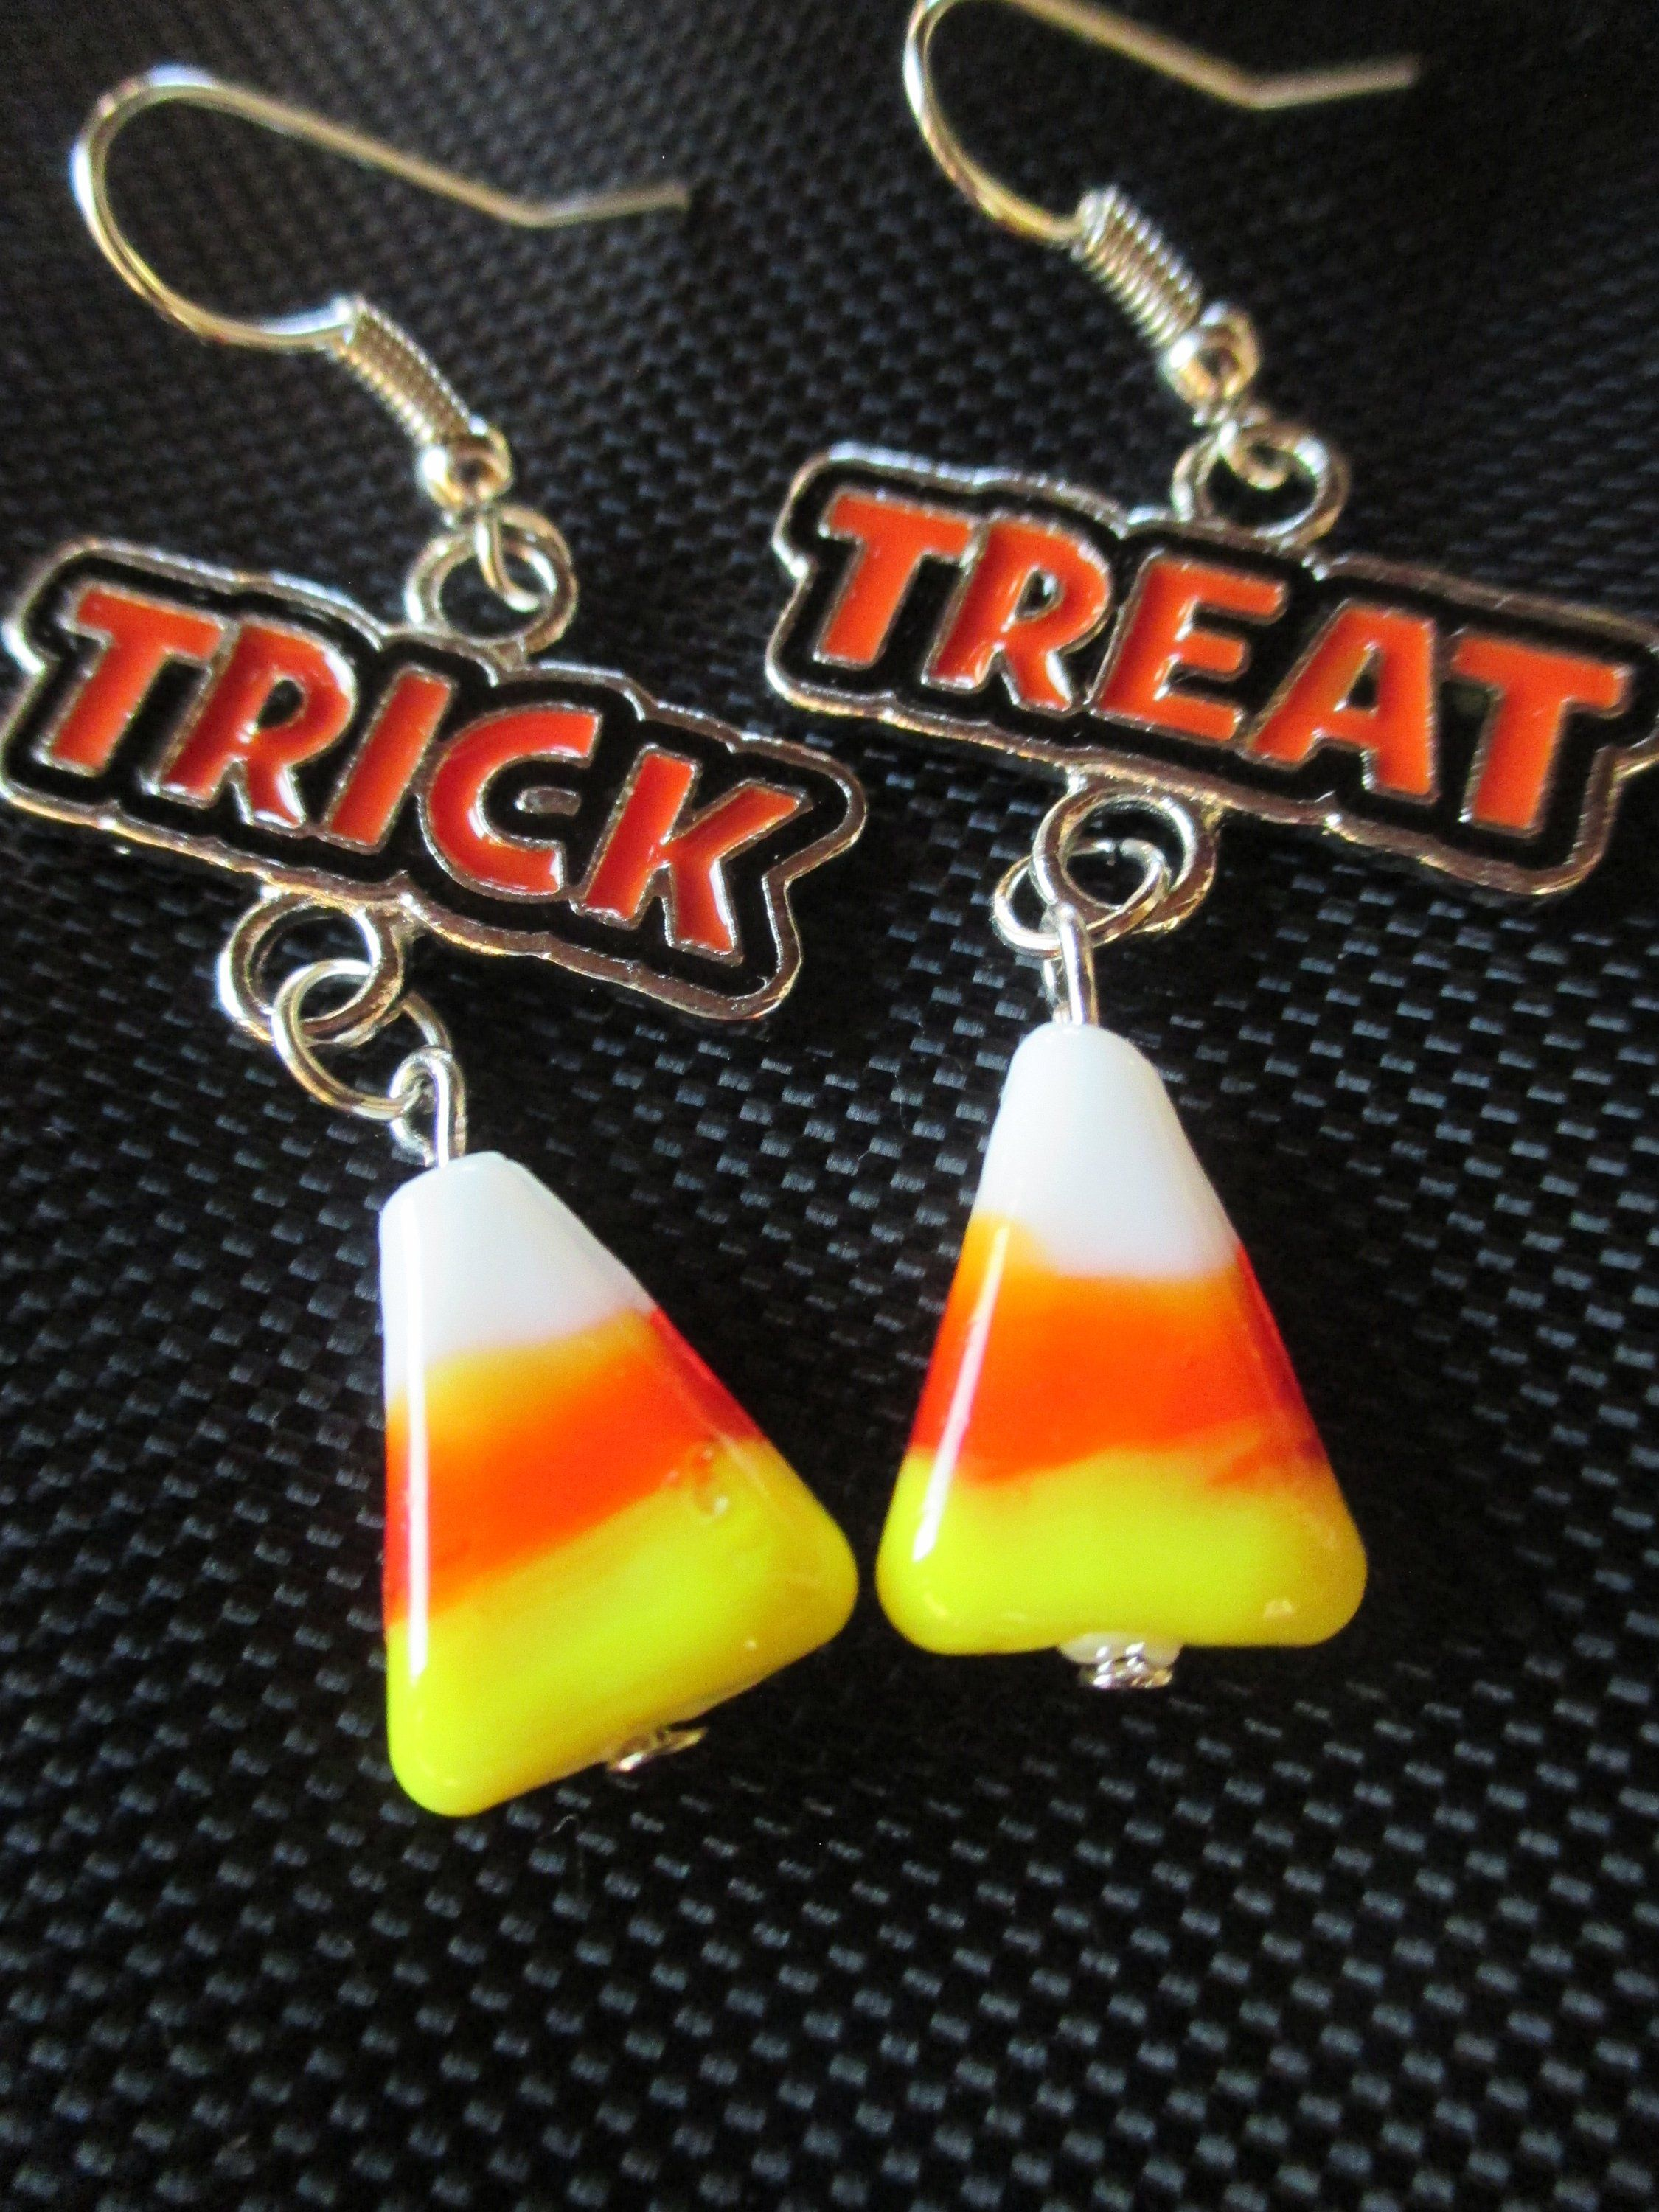 672914a6a Trick or Treat Halloween Candy Corn Earrings, Dangle Halloween earrings,  Halloween Trick Treat Jewelry, Fun halloween earrings, Candy corn